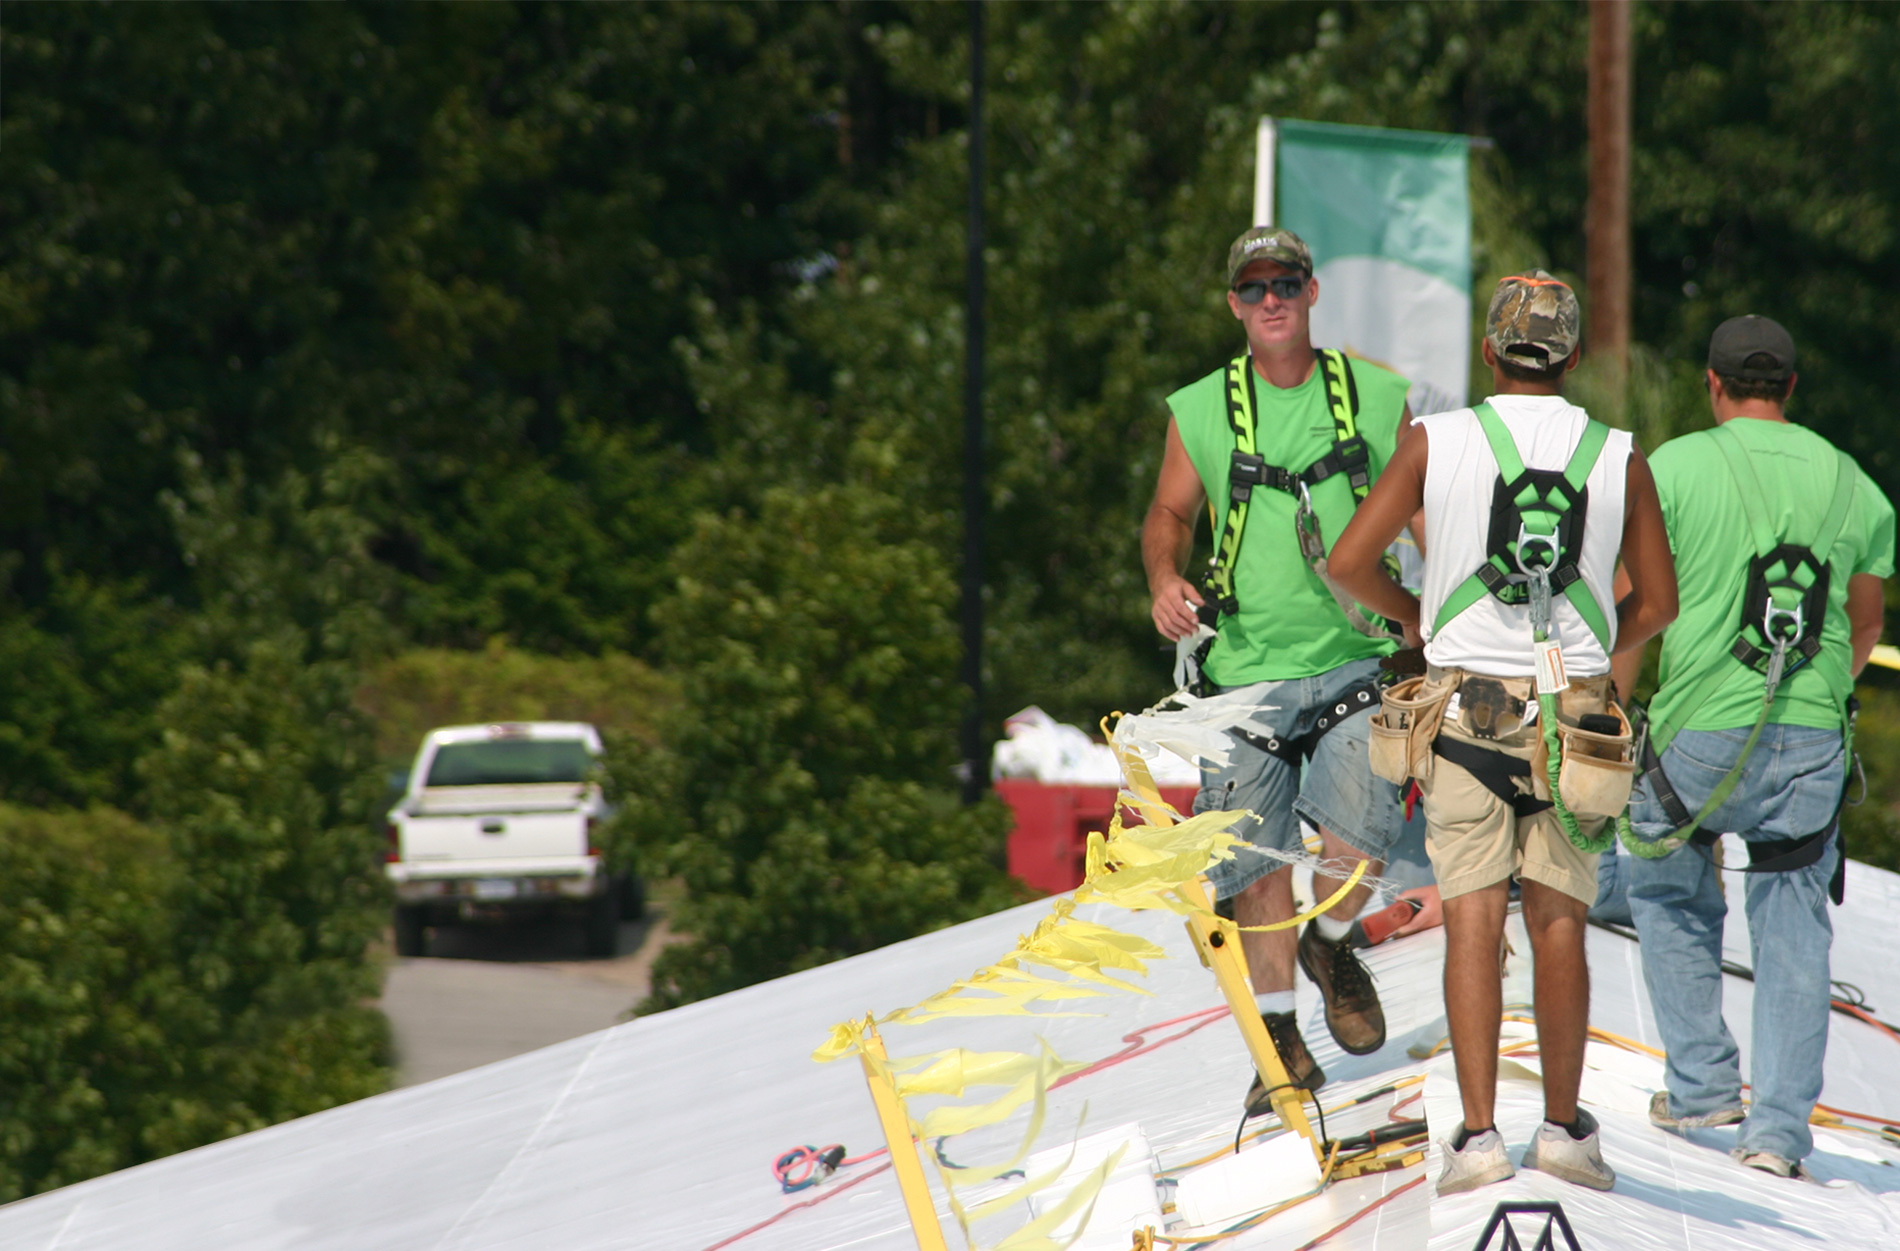 2nd Place in National Roofer's Challenge